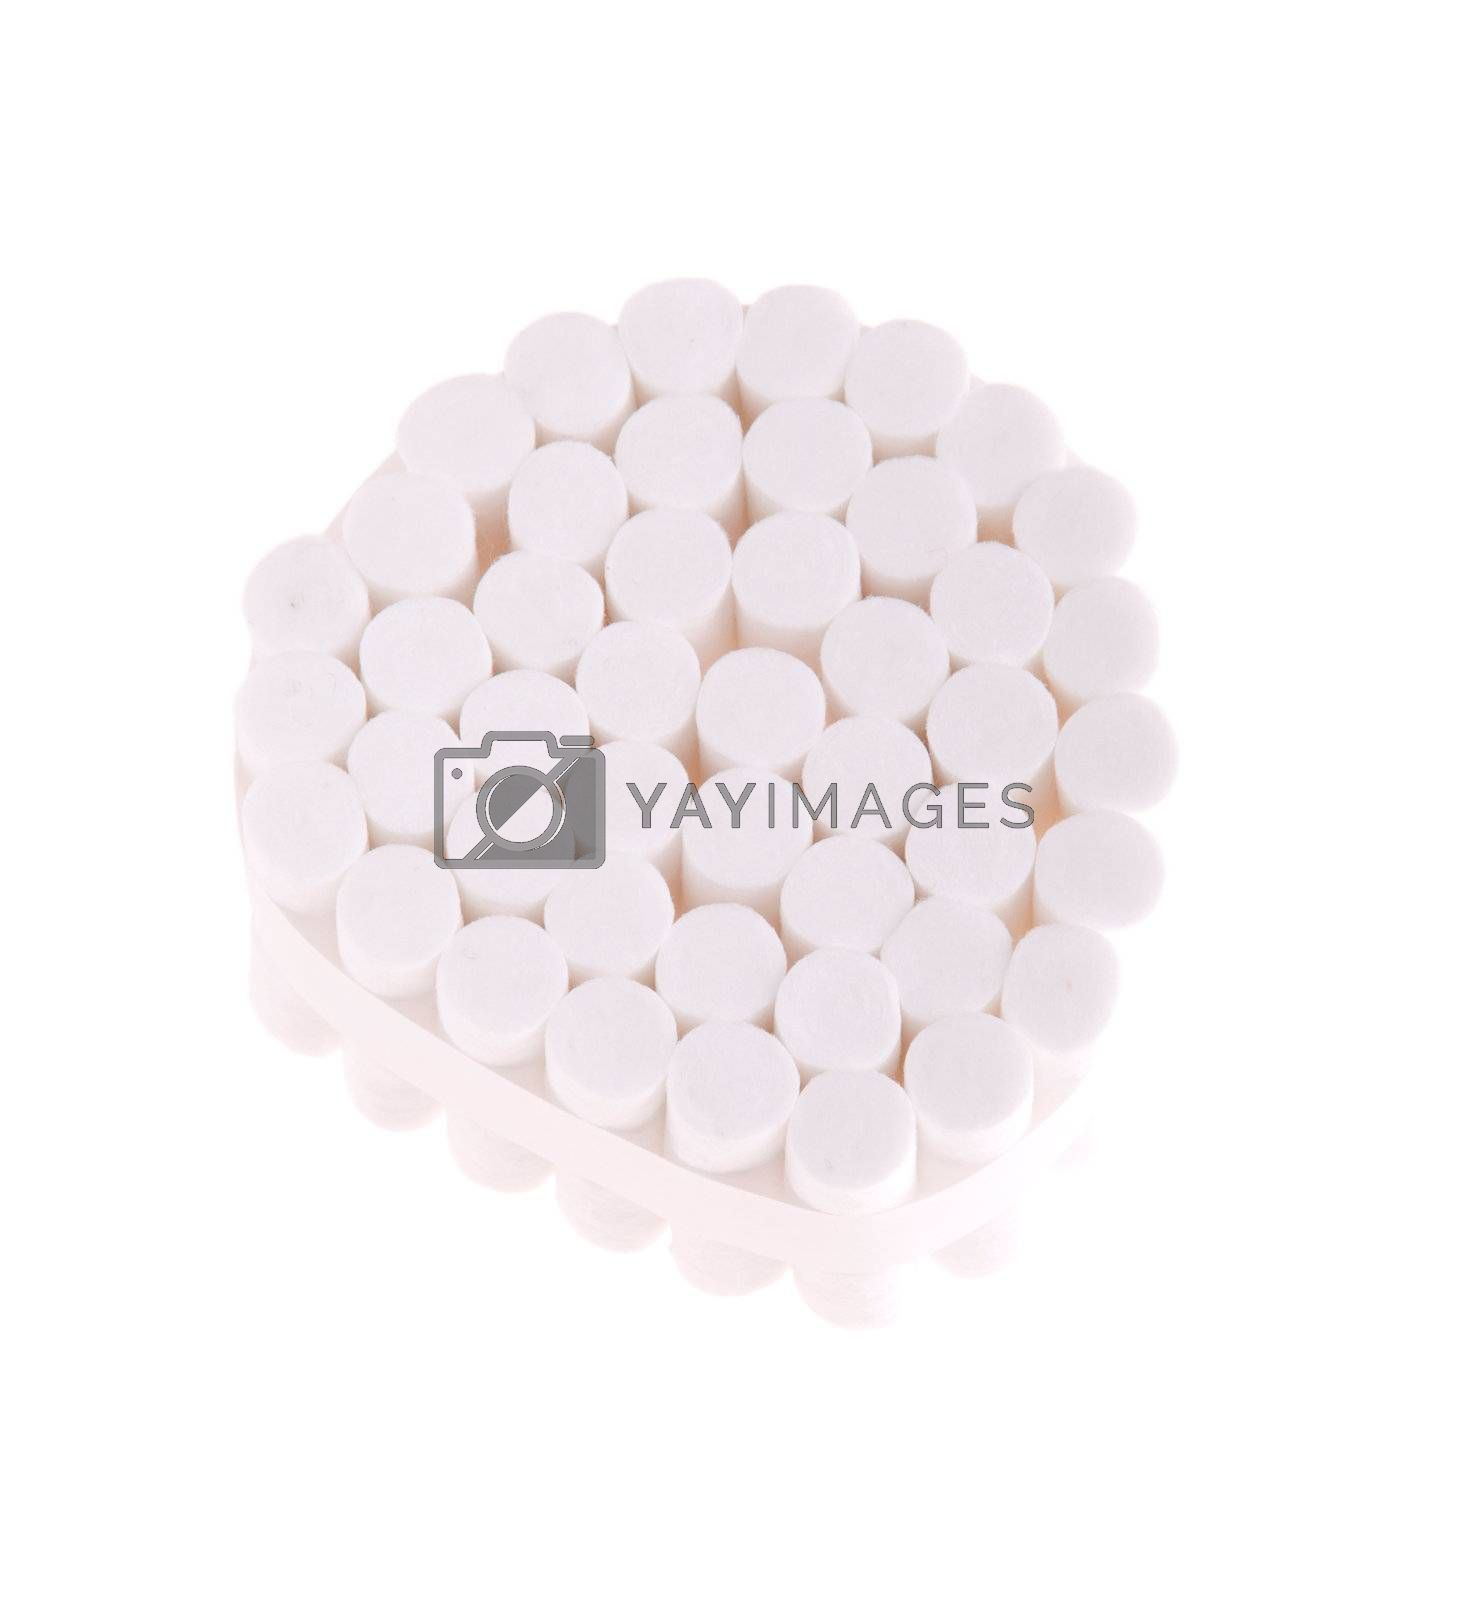 dental cotton rolls isolated on white background